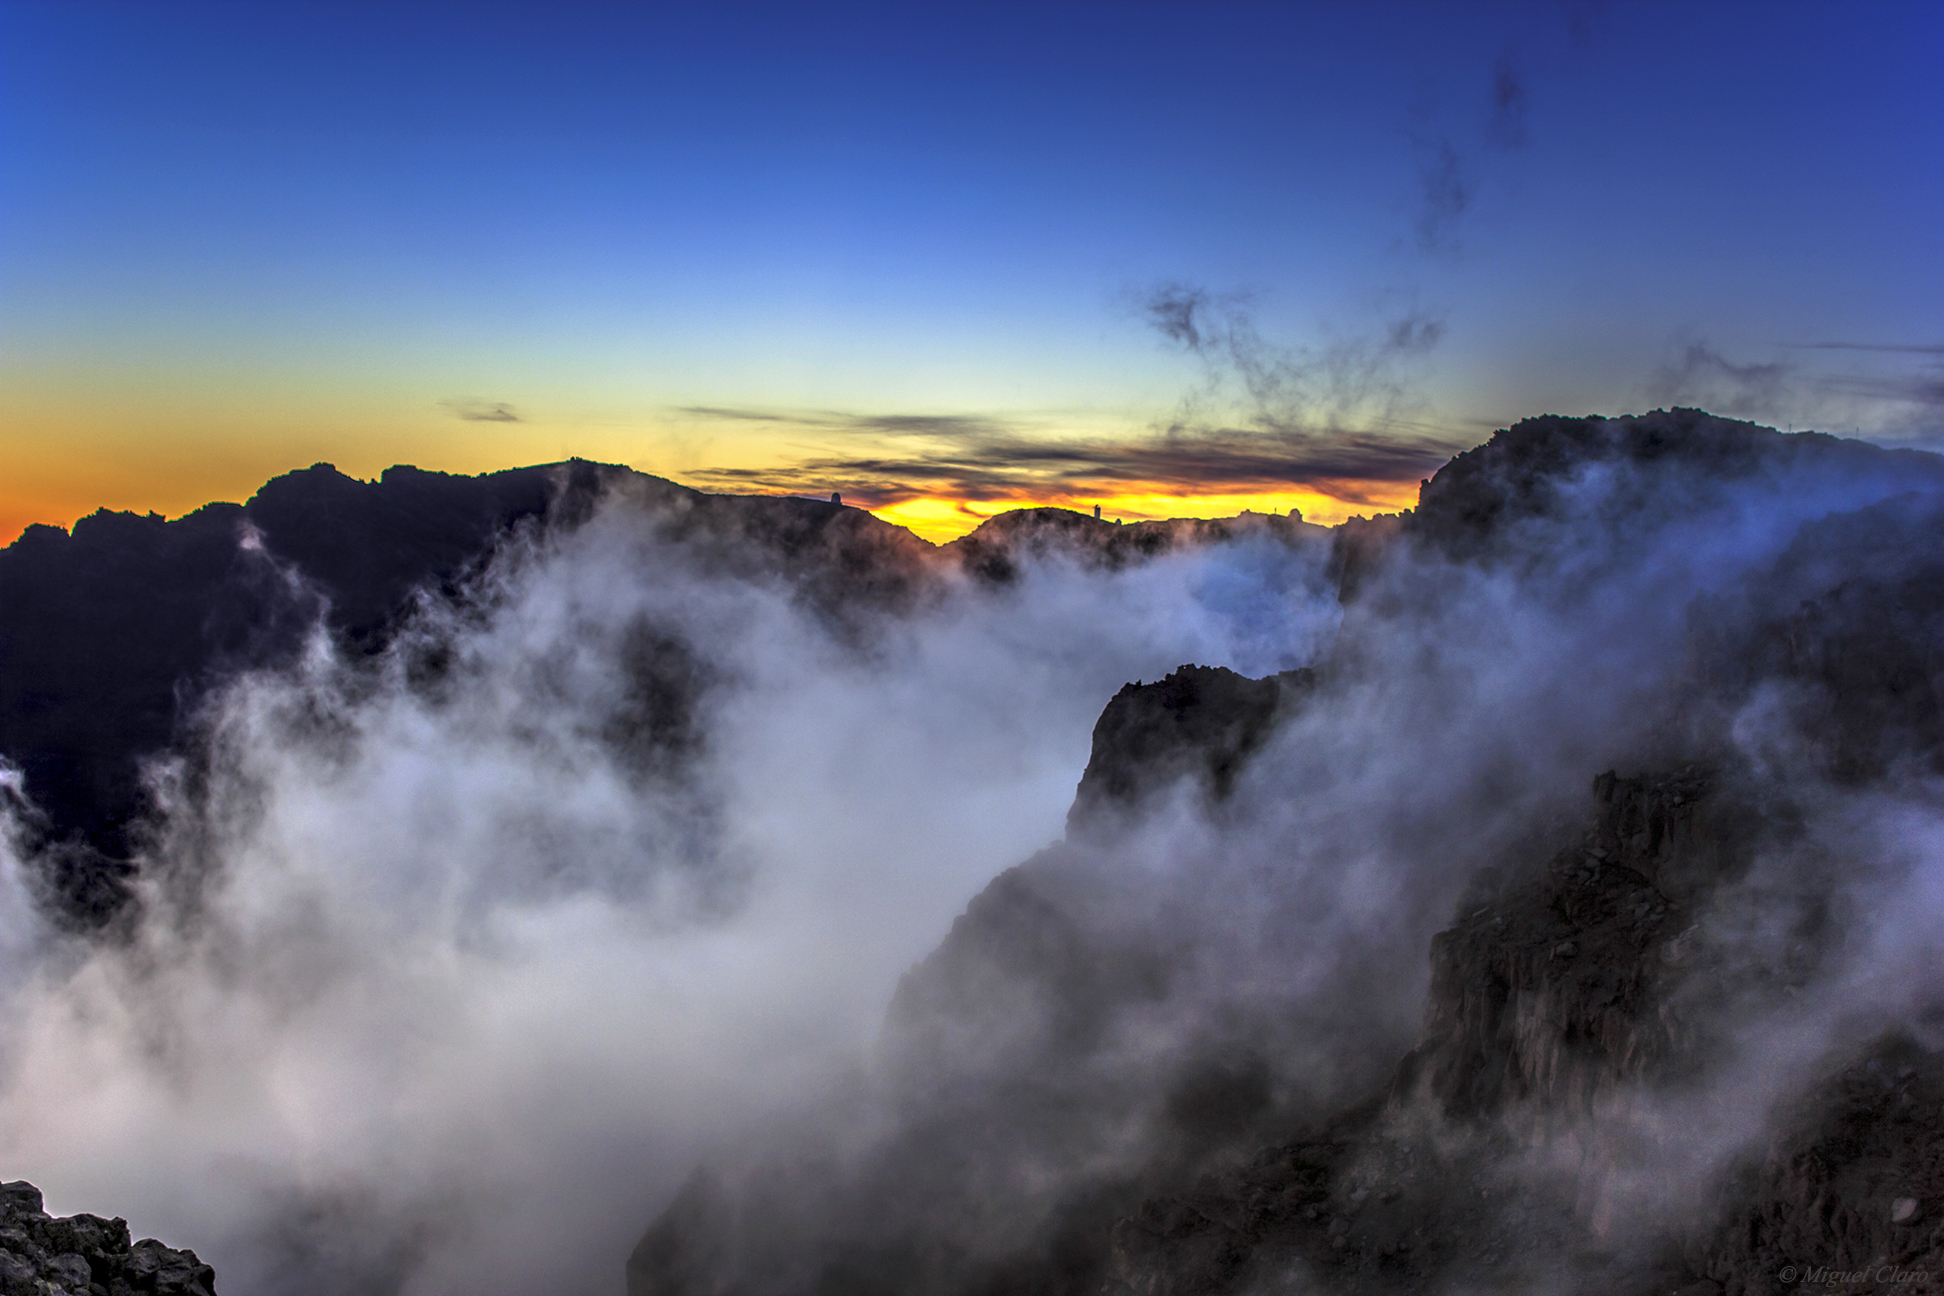 <h5>Clouds and Fog in Caldera de Taburiente</h5>